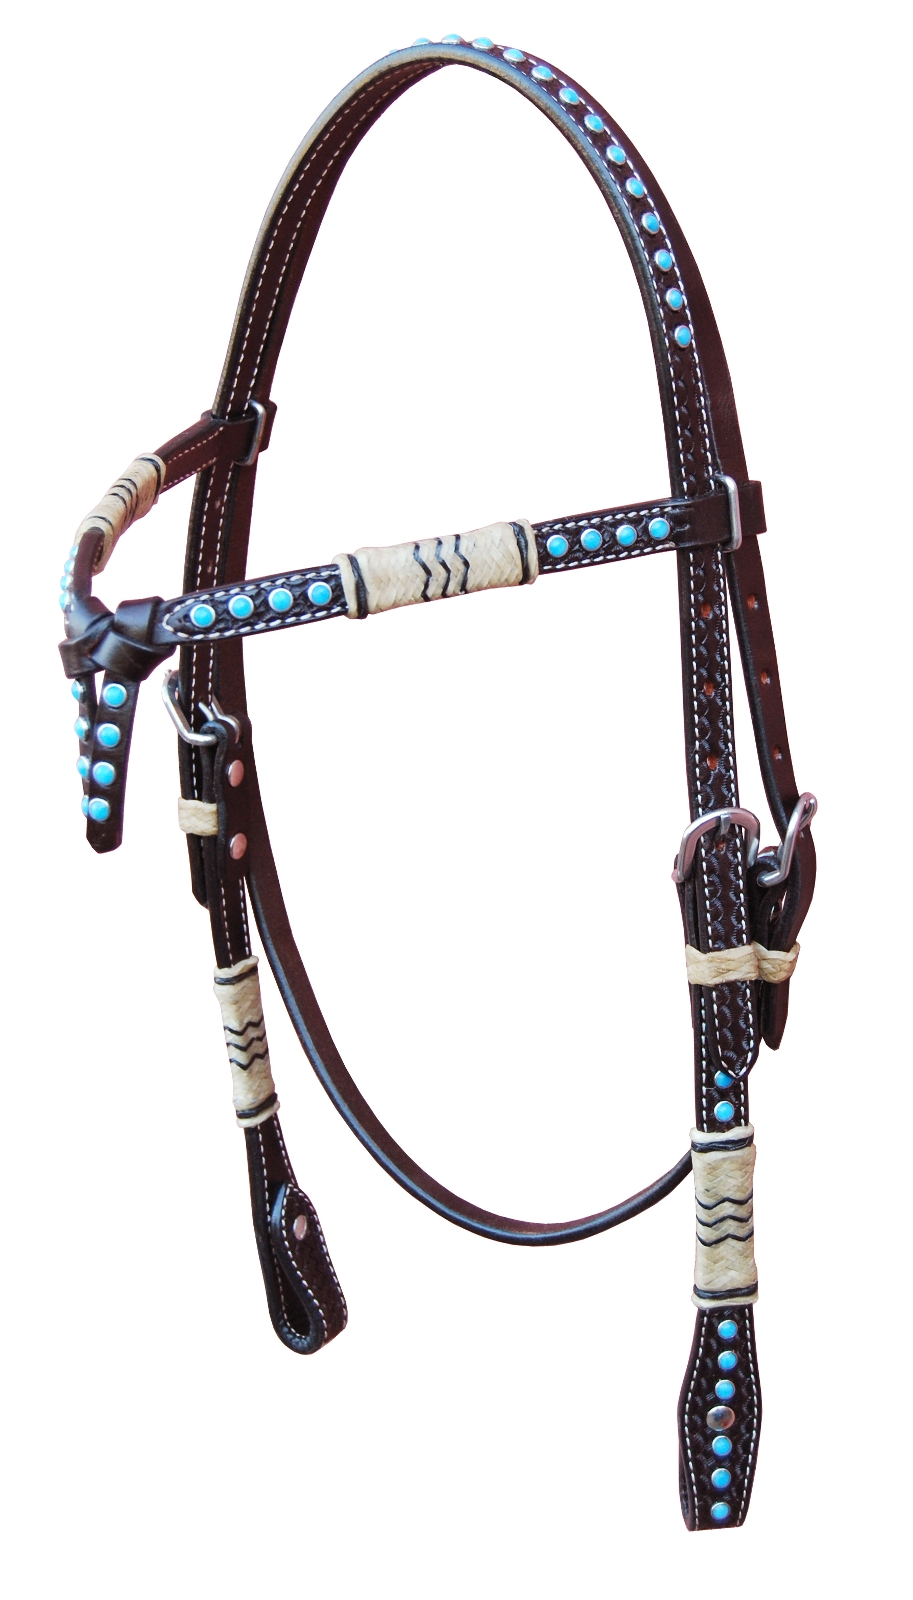 Turn-Two Equine Knotted Headstall Tucson